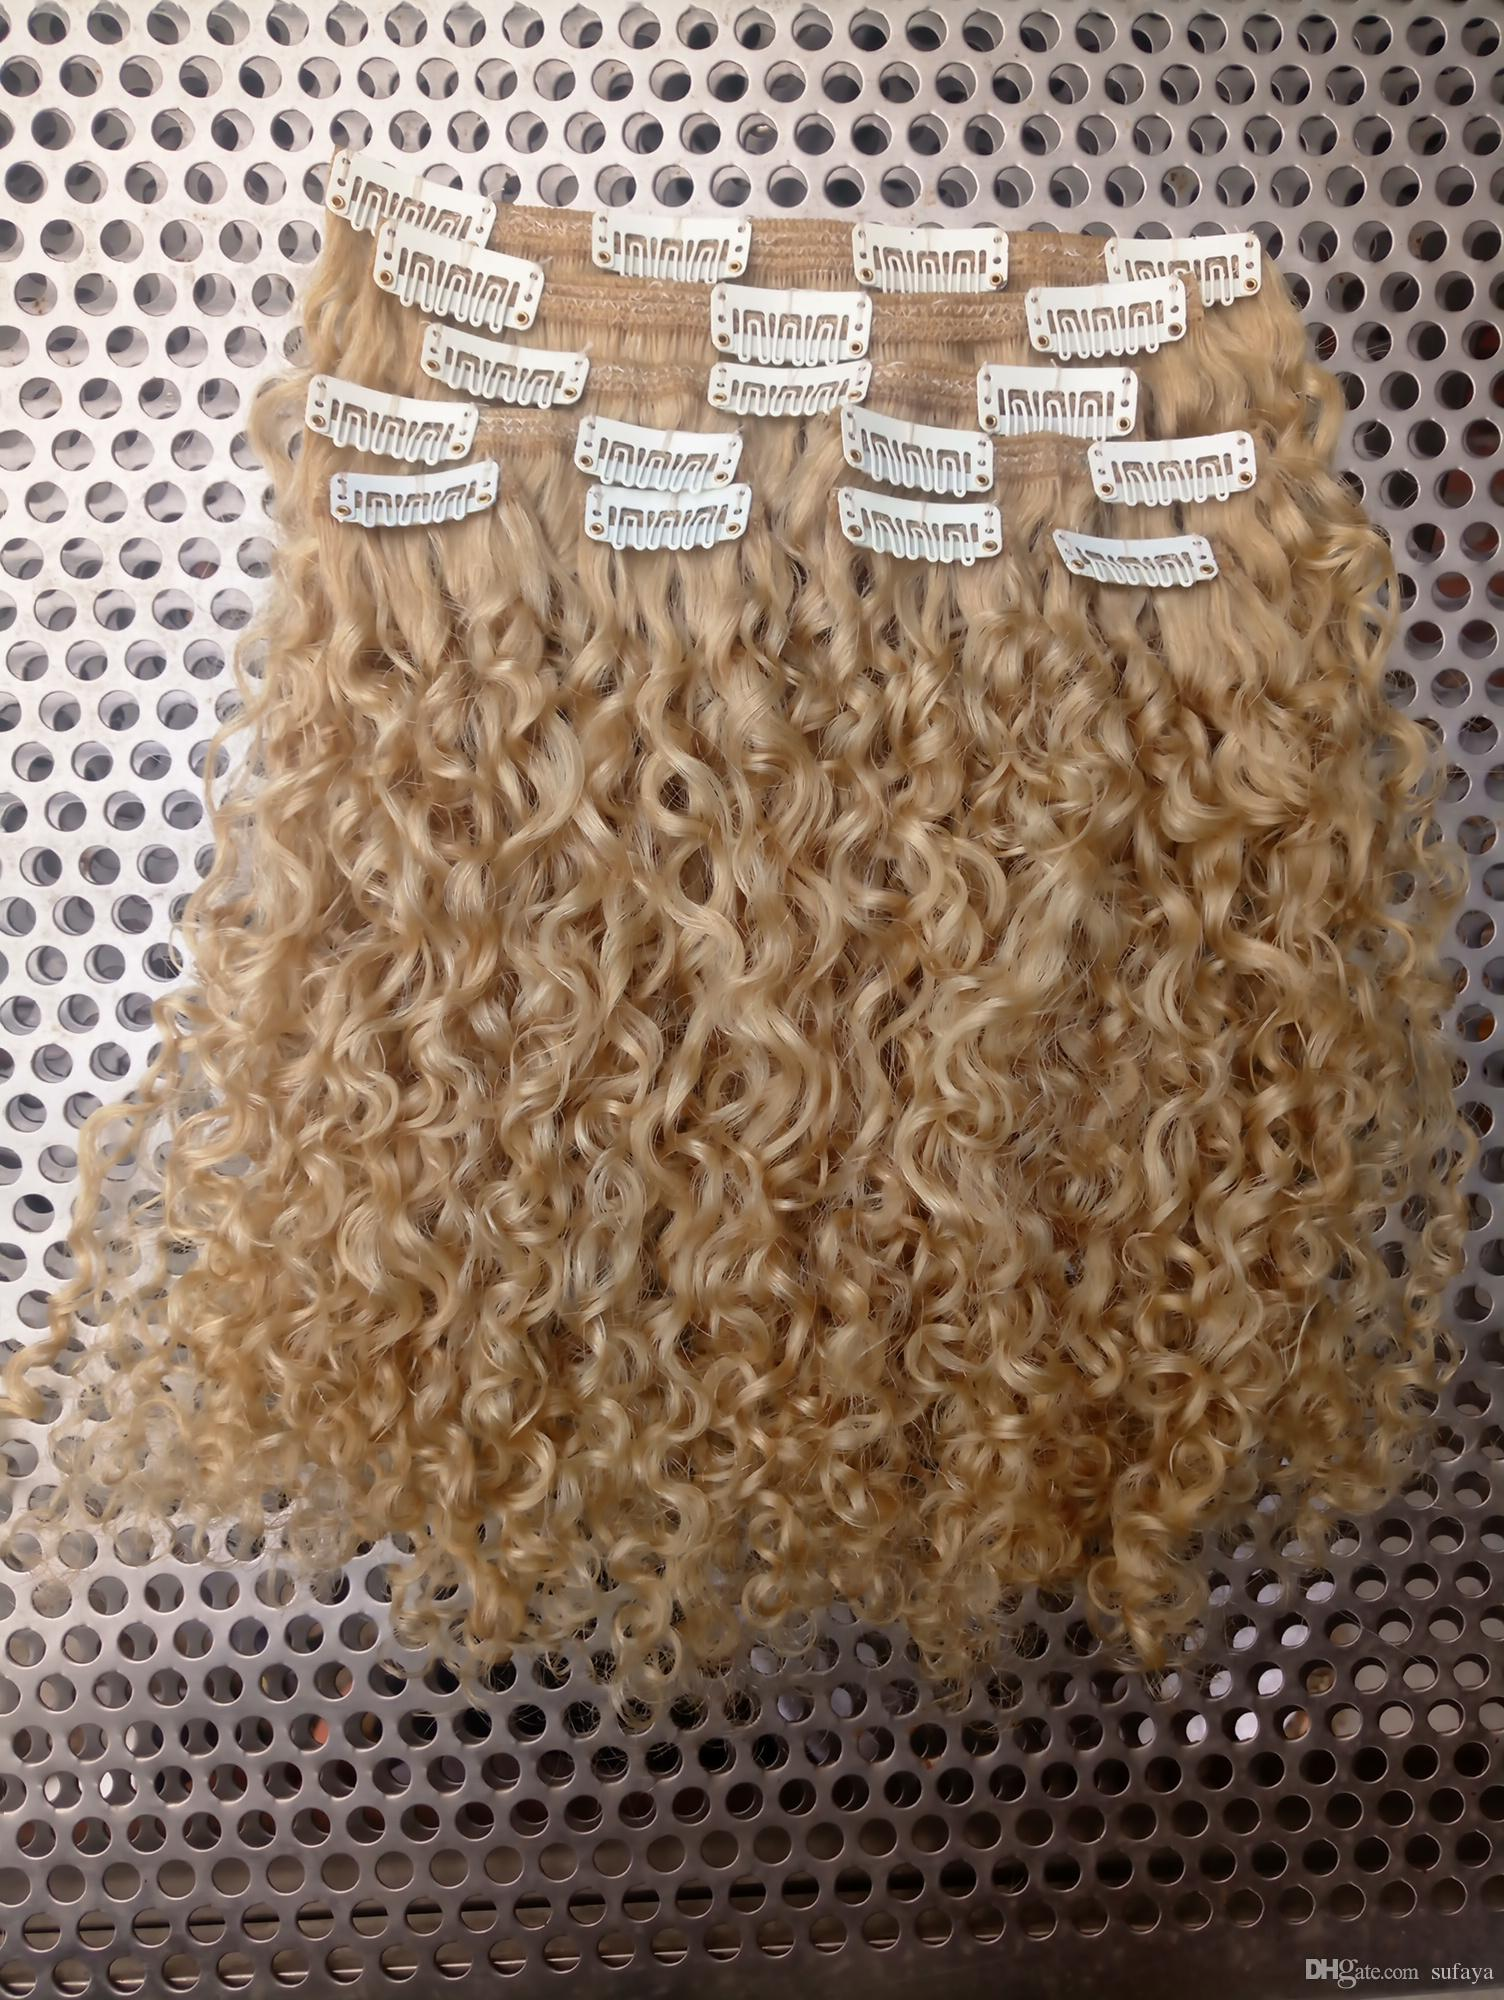 New Style Strong Chinese Virgin Remy Curly Hair Weft Human Top Clip Ins Hair Extensions blonde 6130# Color 100g Hair one Set